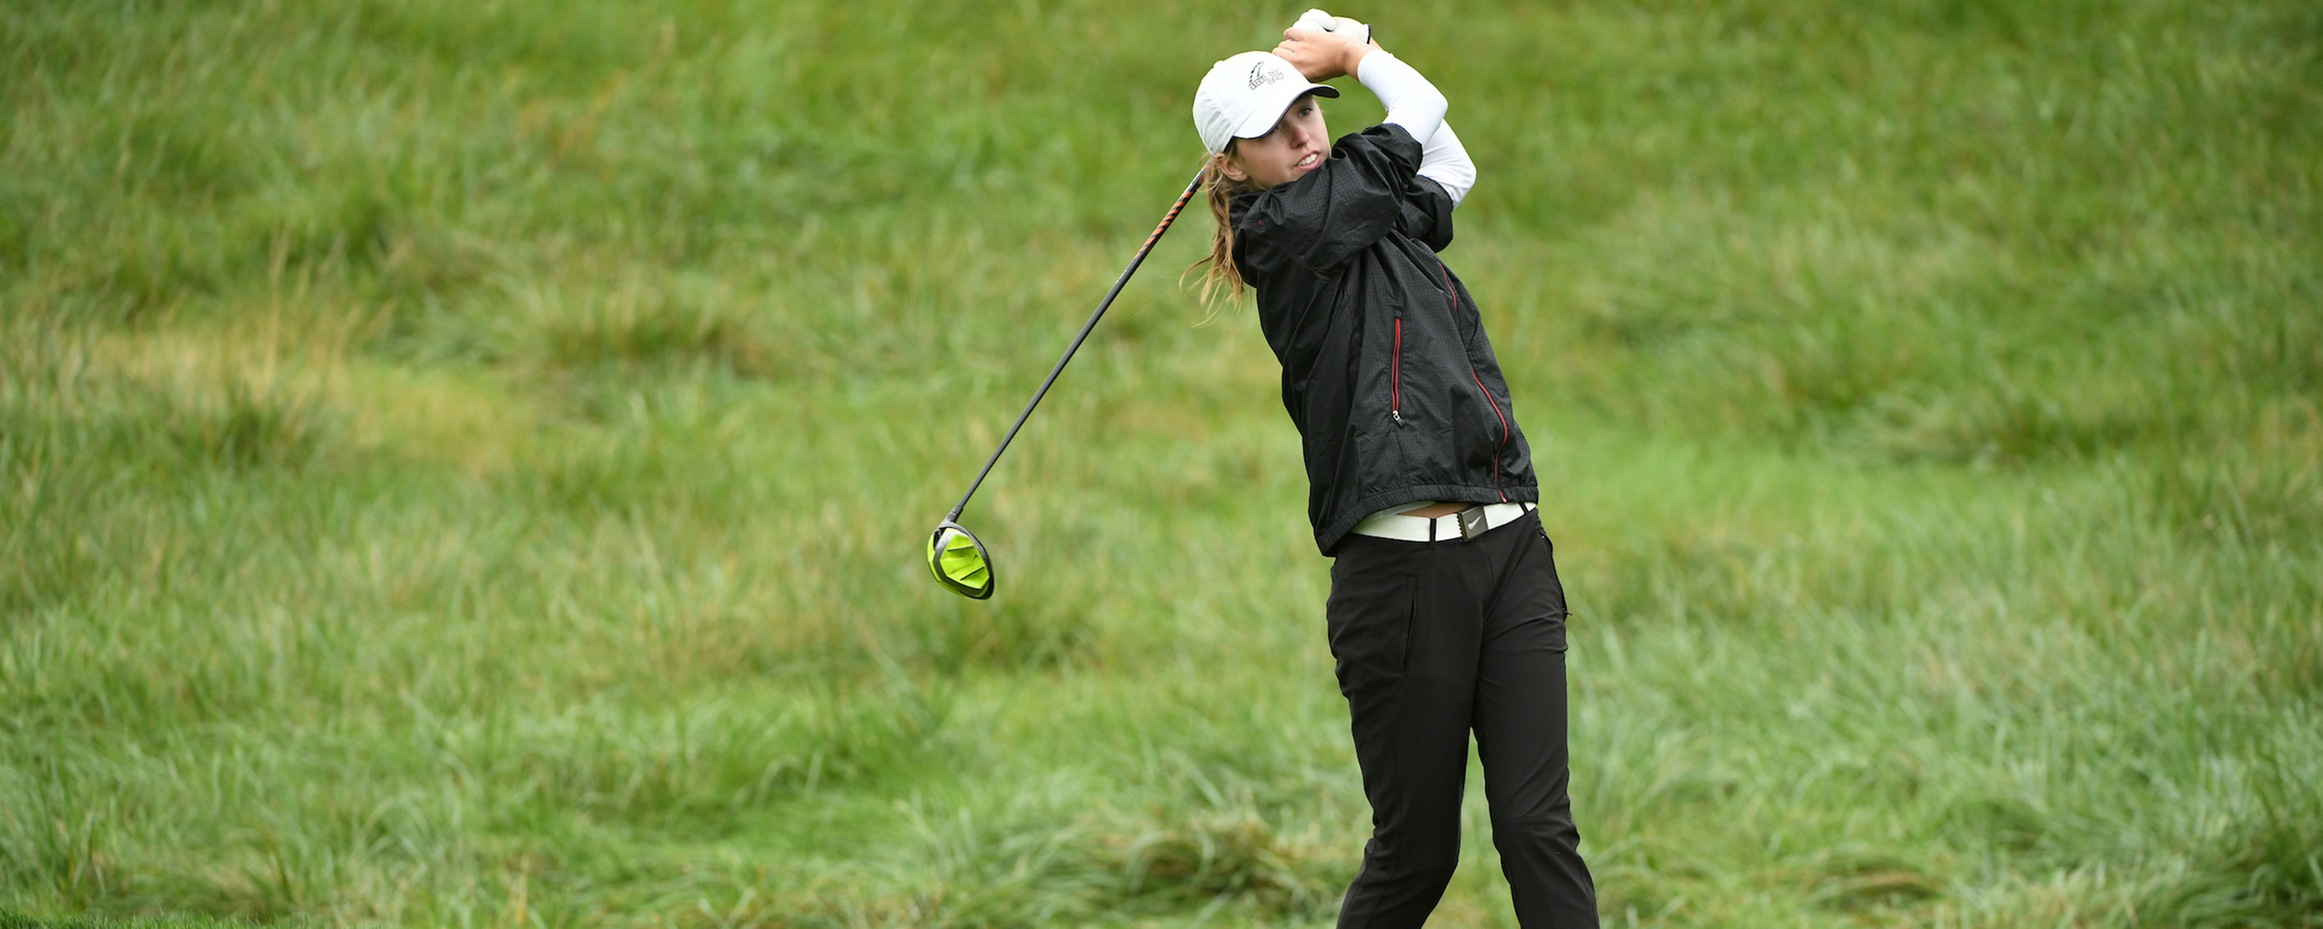 Kline Leads Mustangs in First Round at Bridgewater Invitational